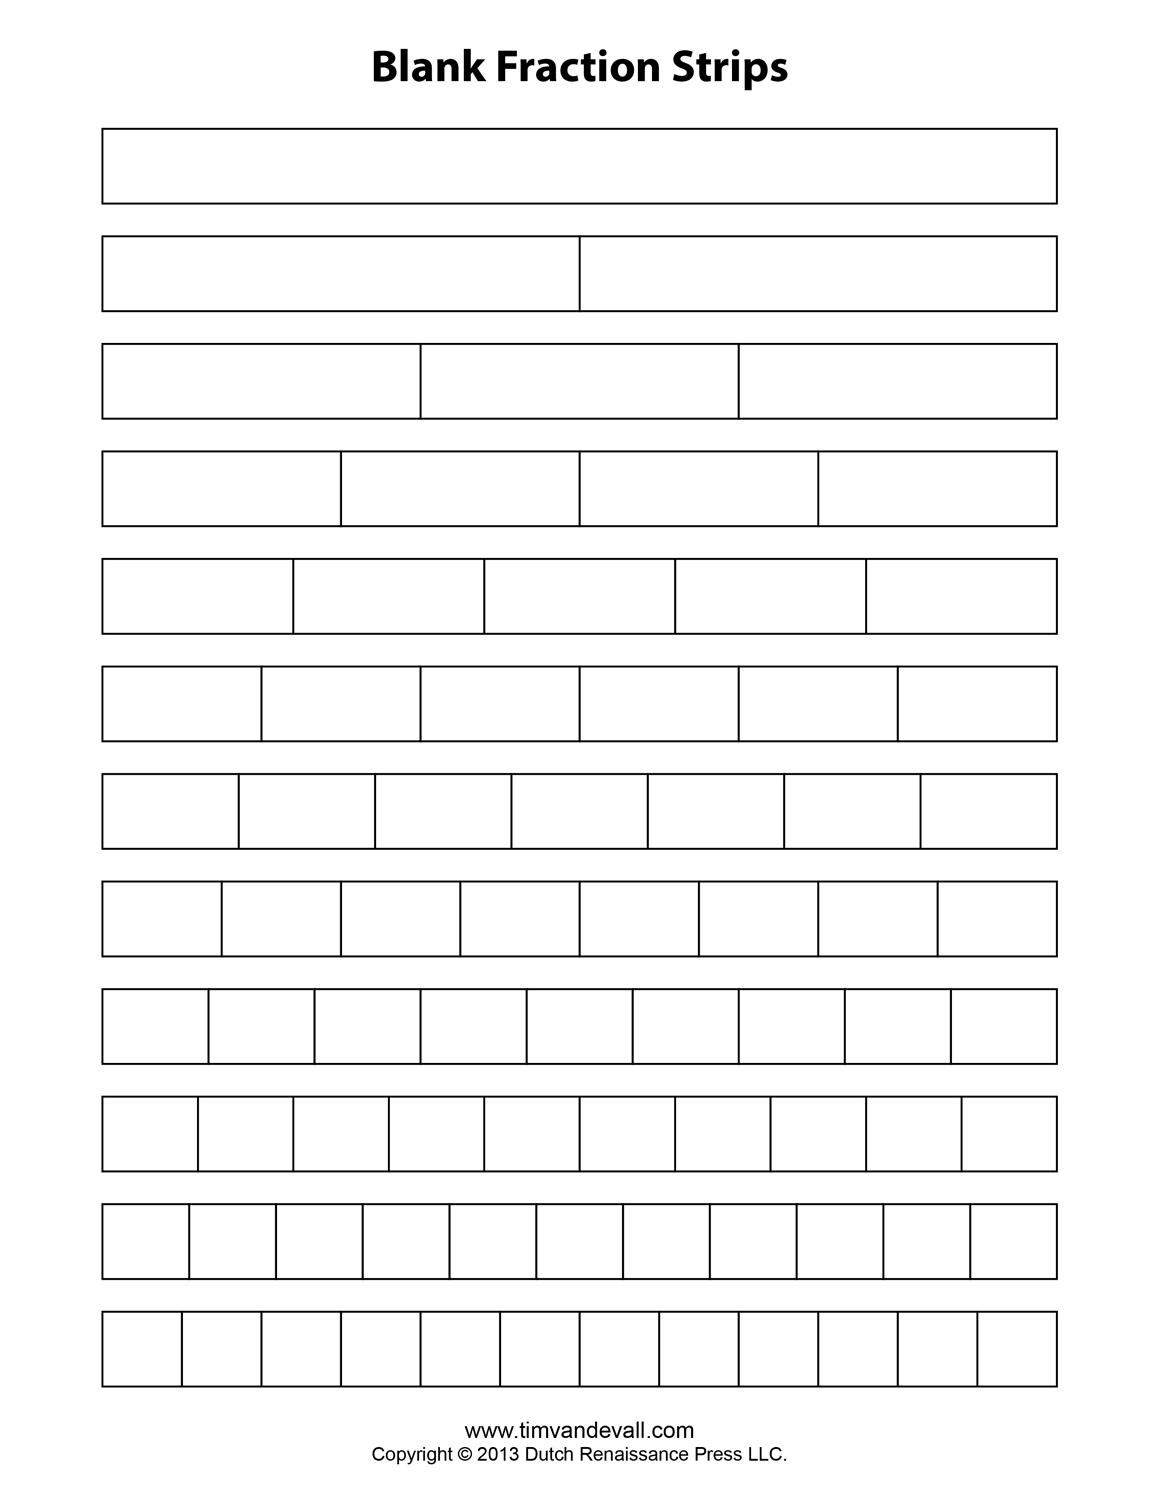 worksheet Fraction Strips Worksheet fraction strip templates for kids school math printables printable strips blank templates